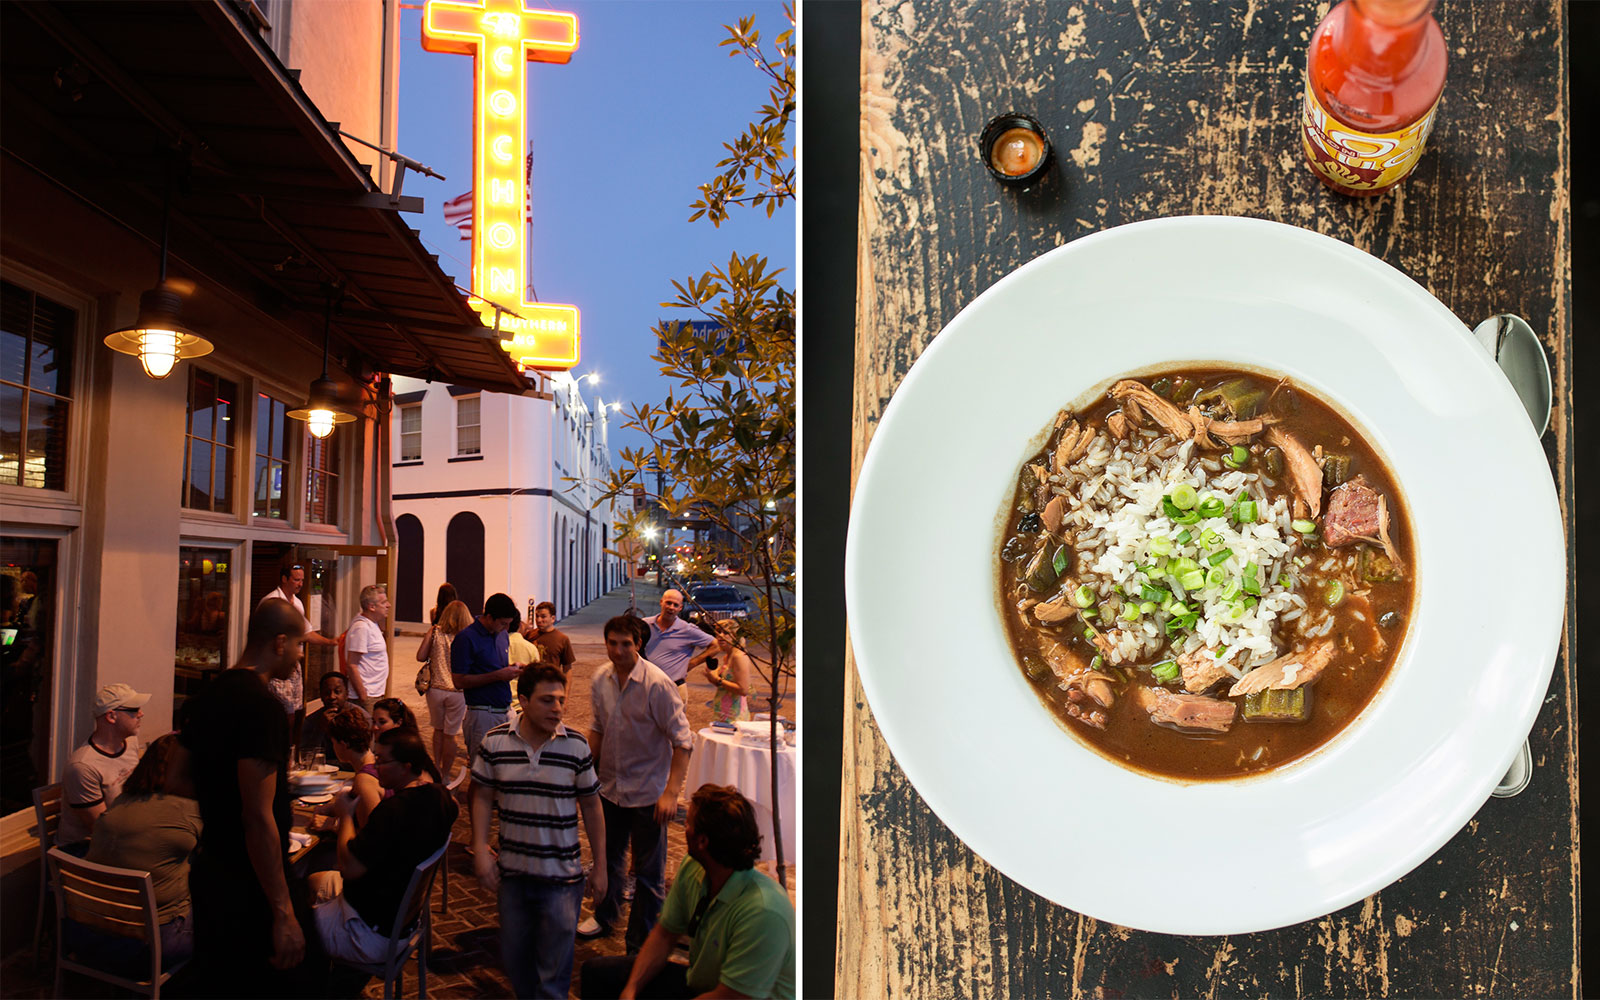 Southern Chefs Dish Their Gumbo Secrets